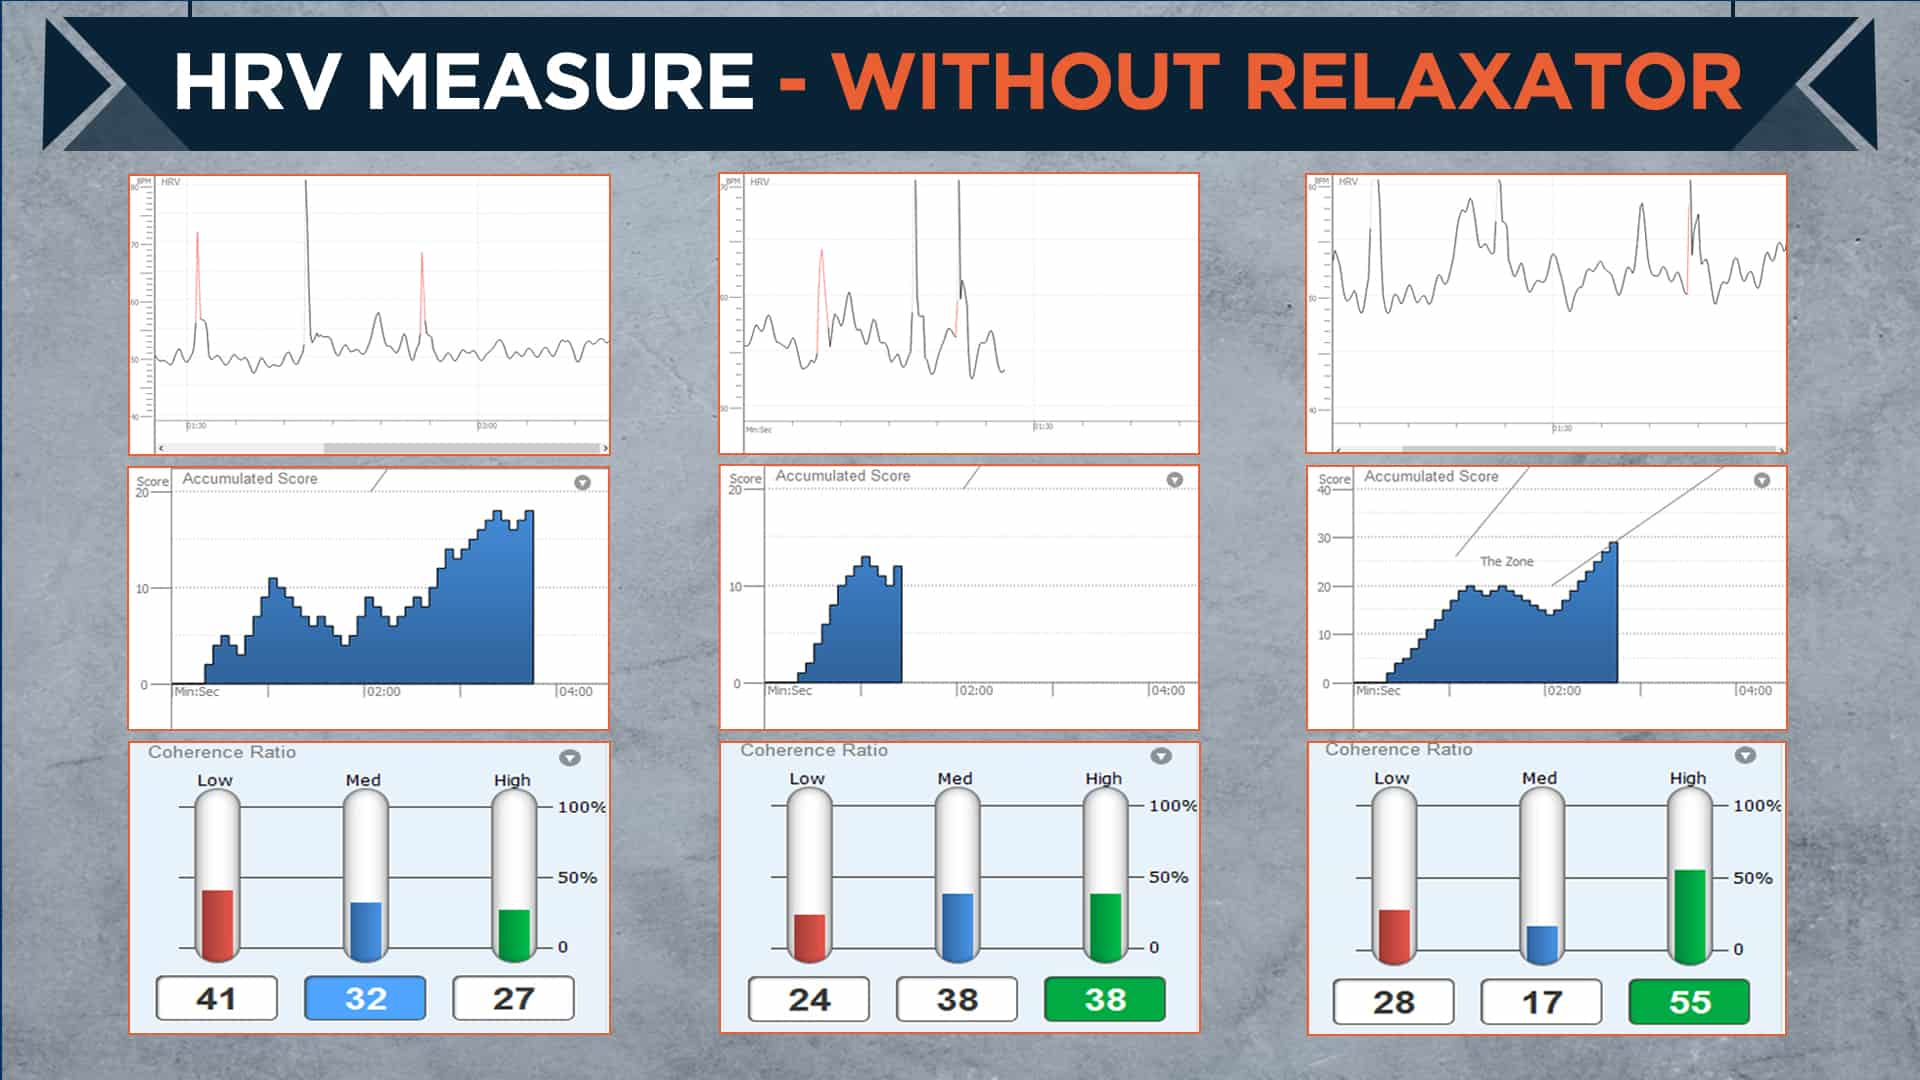 HRV Measure 2 without Relaxator